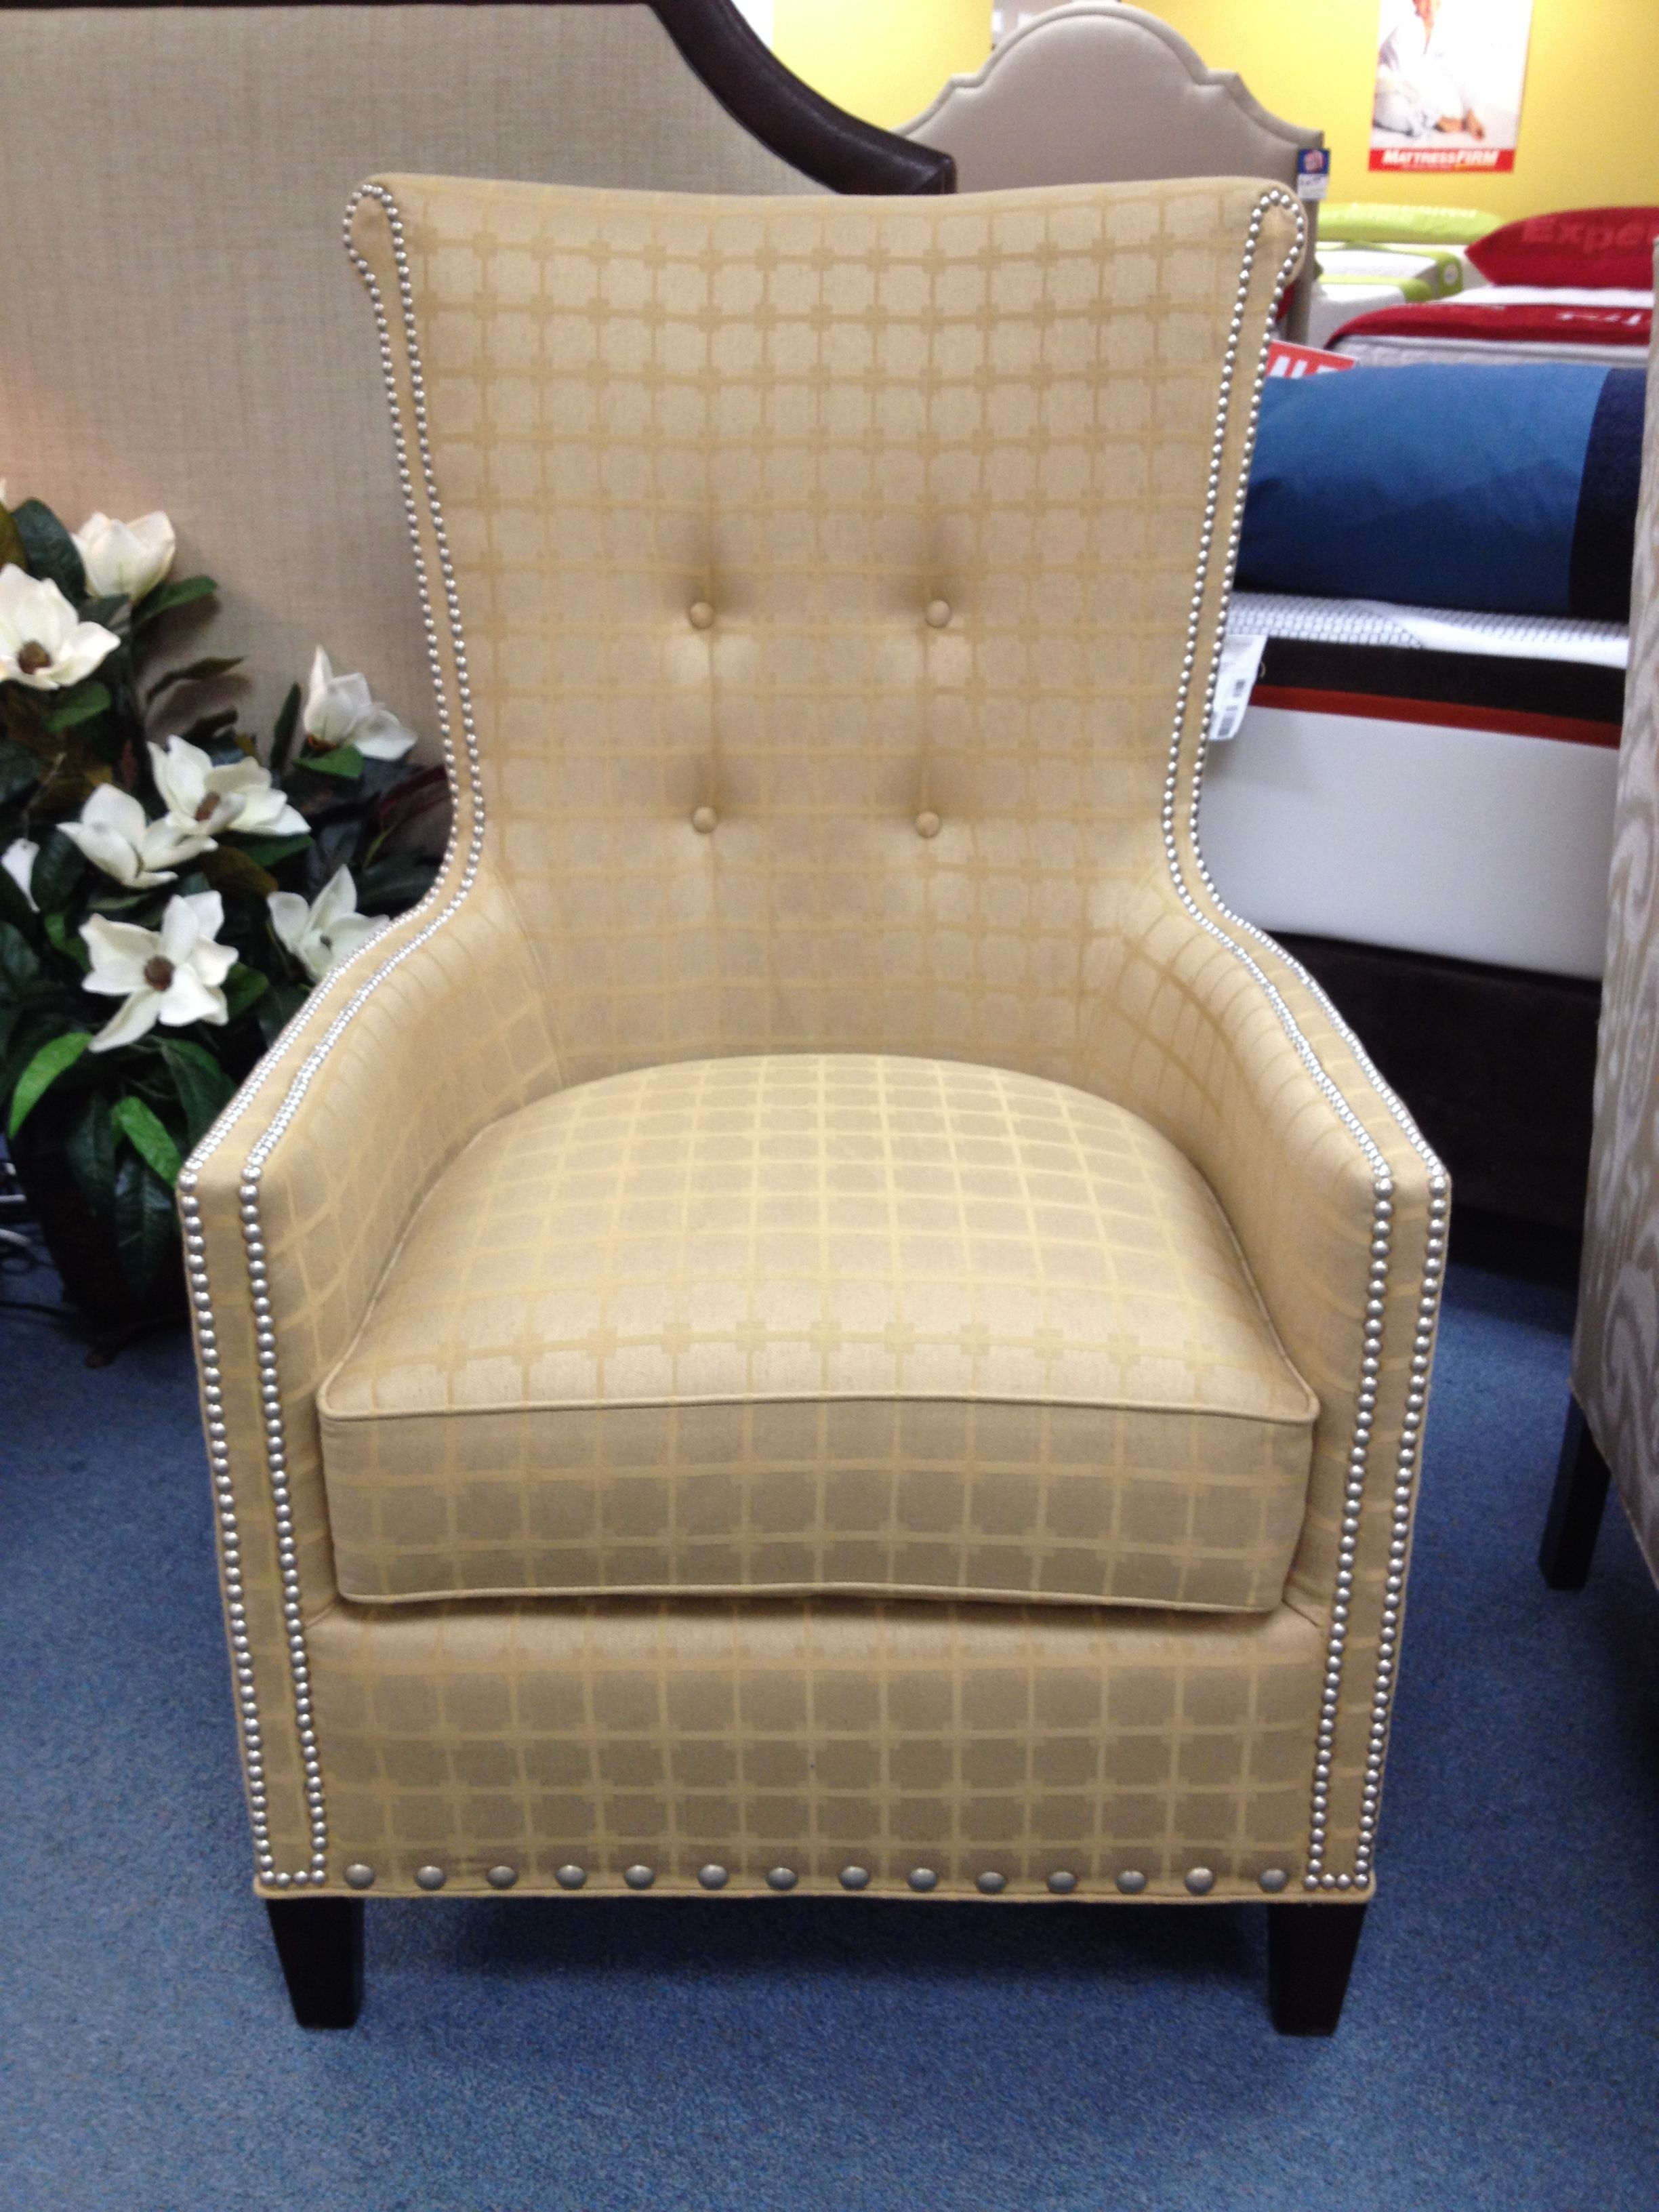 Manor Lounge Chair From Fairfield At D NOBLIN FURNITURE.love.